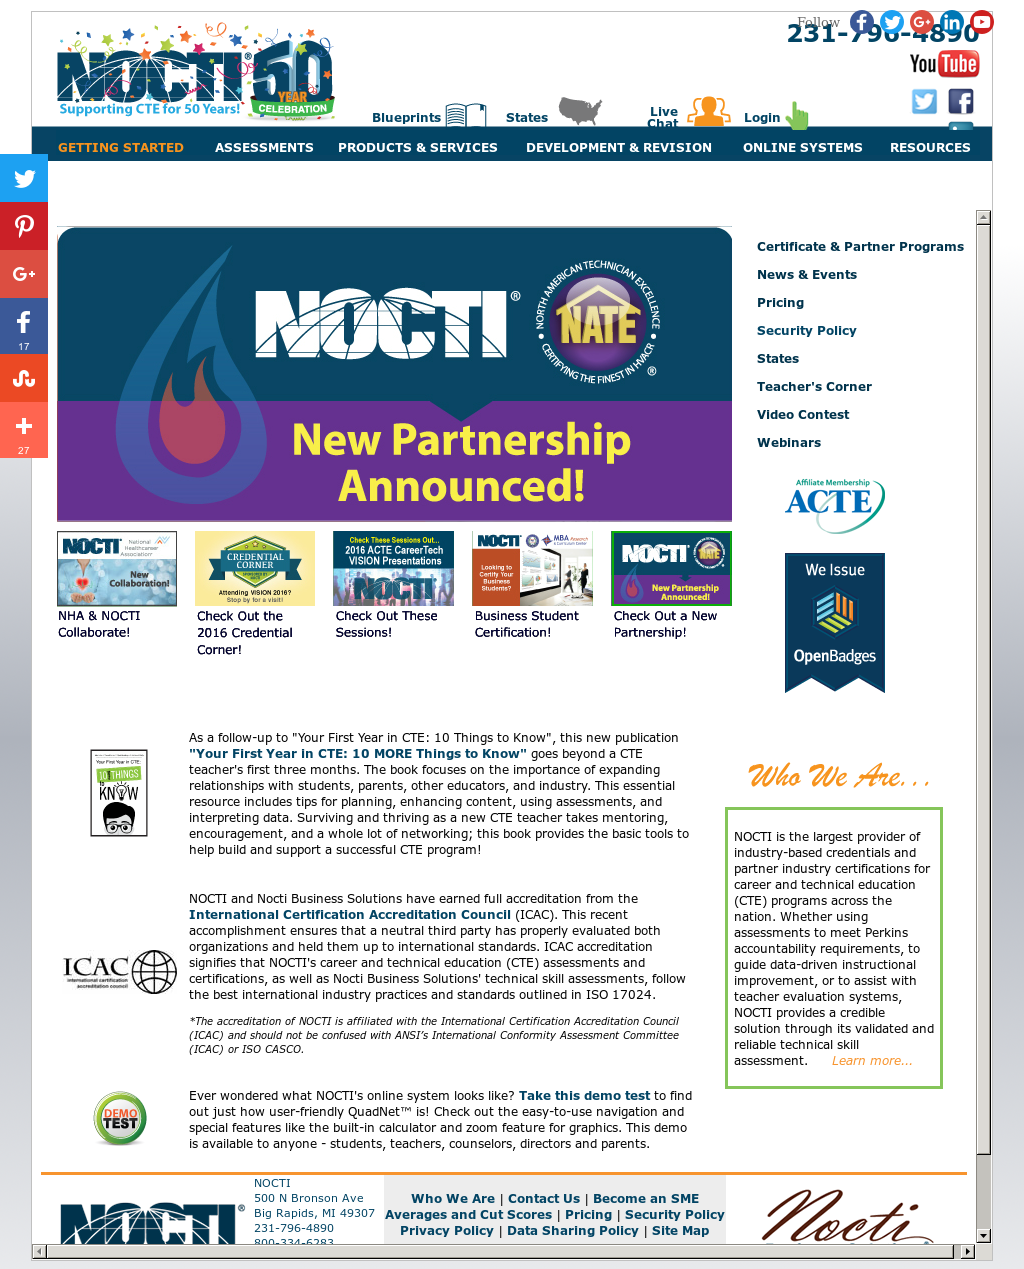 Owler Reports Press Release Nocti Nocti And Nocti Business